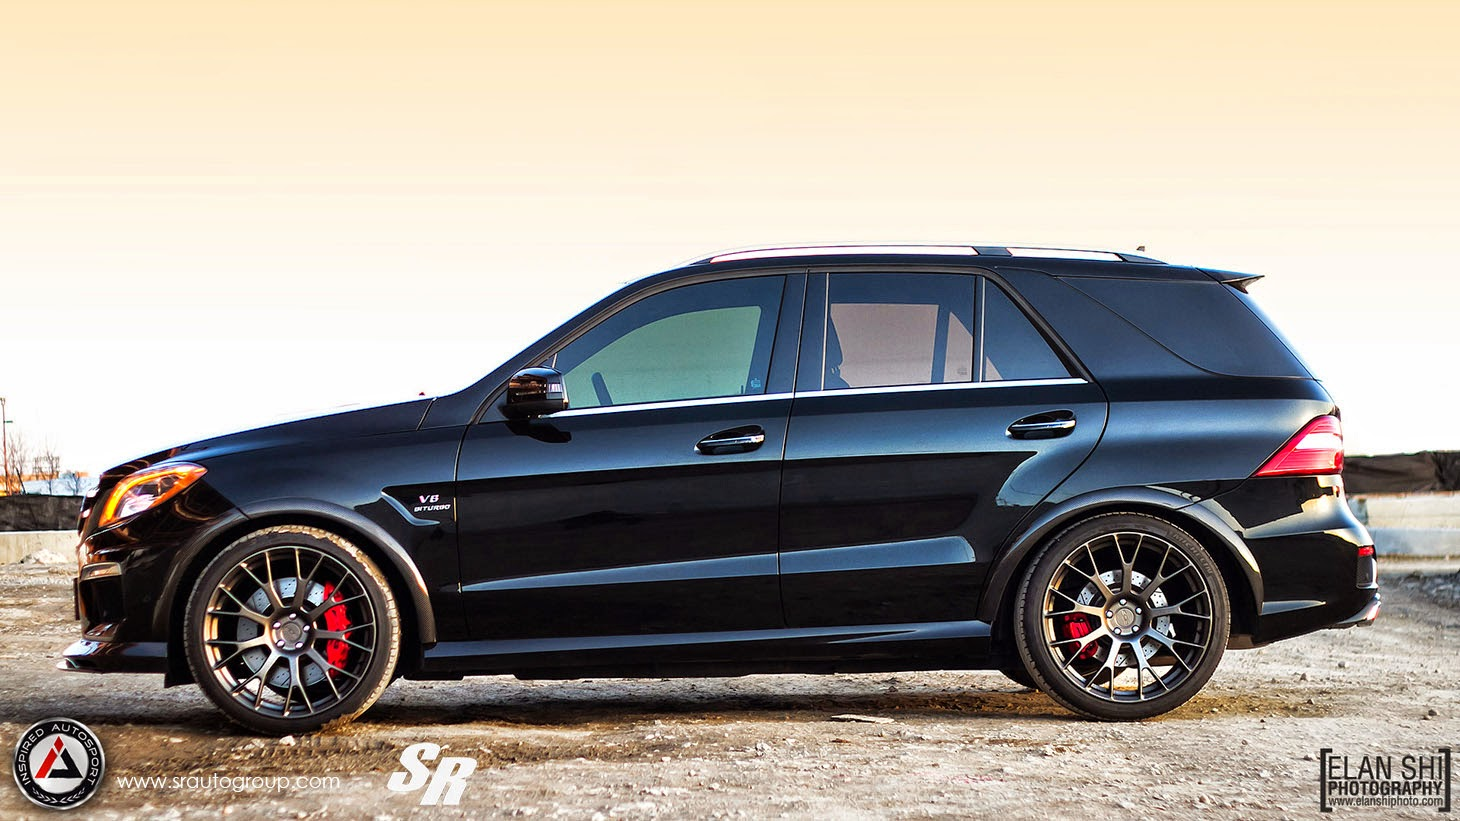 Mercedes benz ml63 amg revozport on pur wheels benztuning for Mercedes benz amg ml63